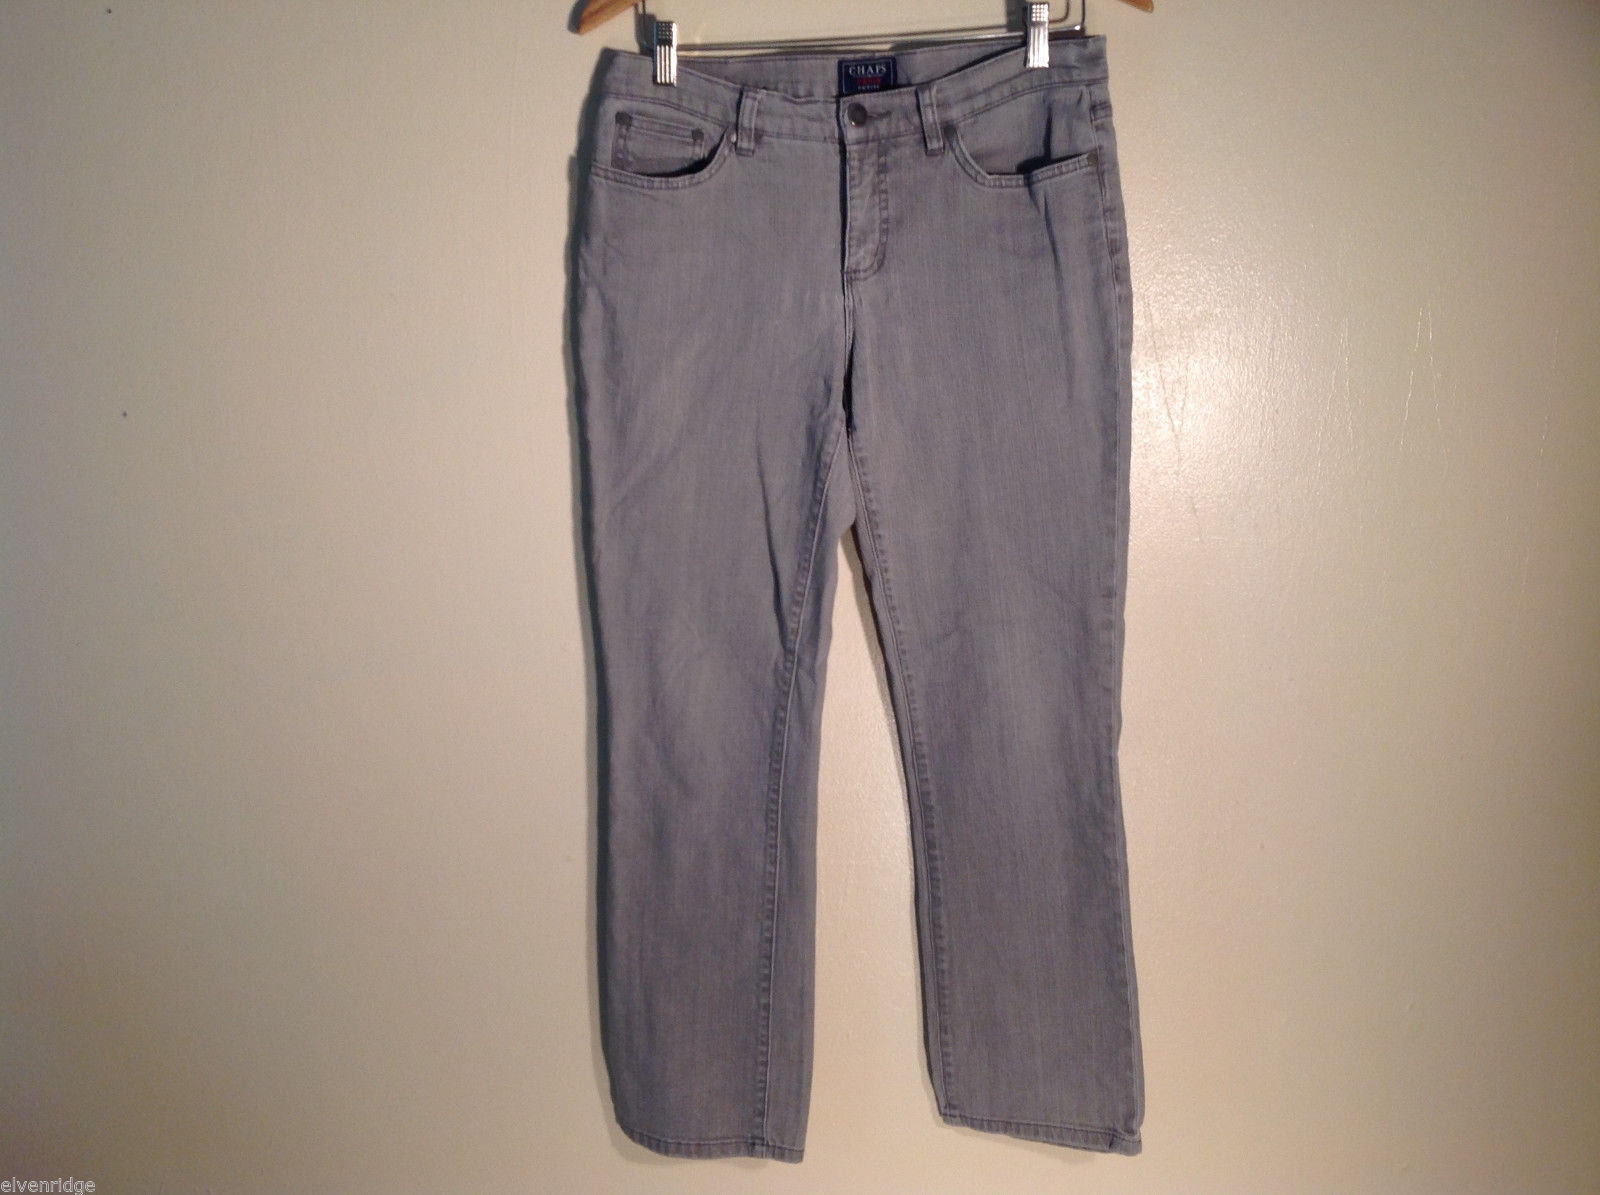 Womens Chaps Denim Petite Jeans Size 8P Gray Great